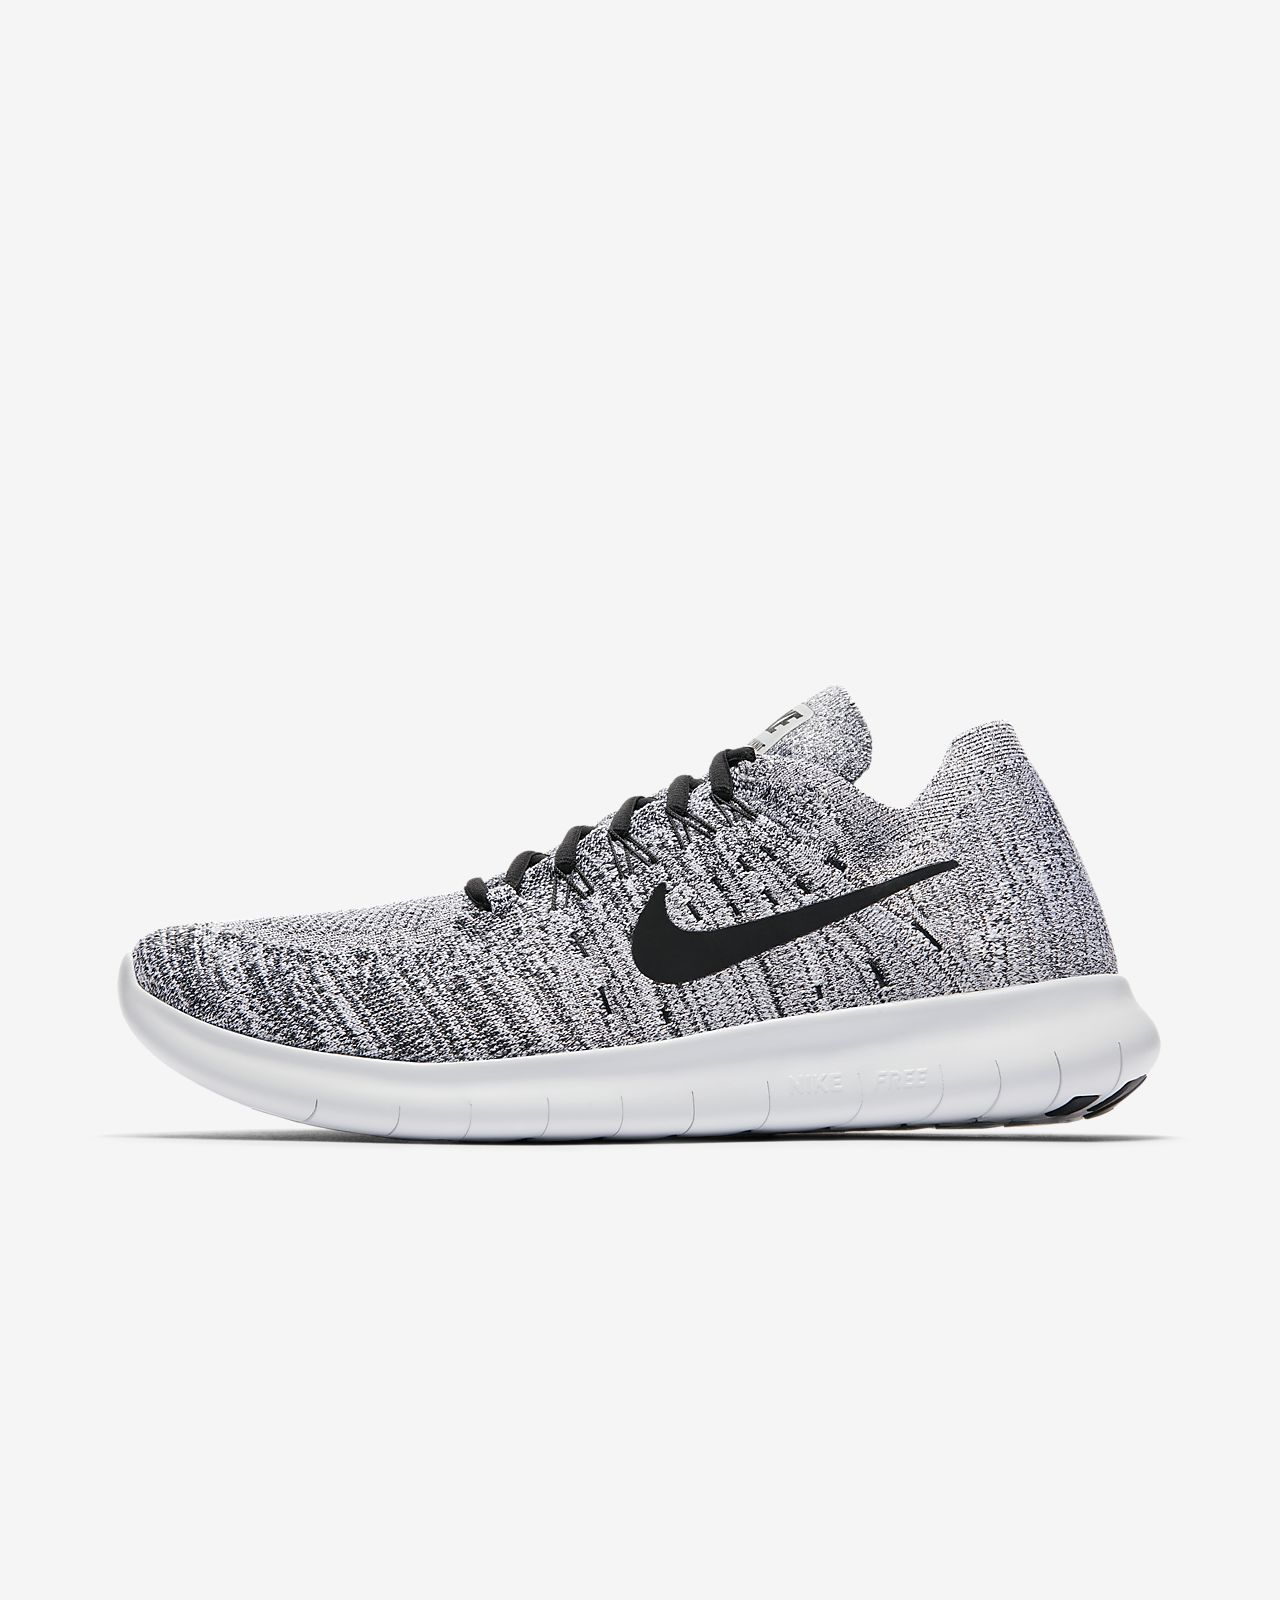 ... Nike Free RN Flyknit 2017 Men's Running Shoe